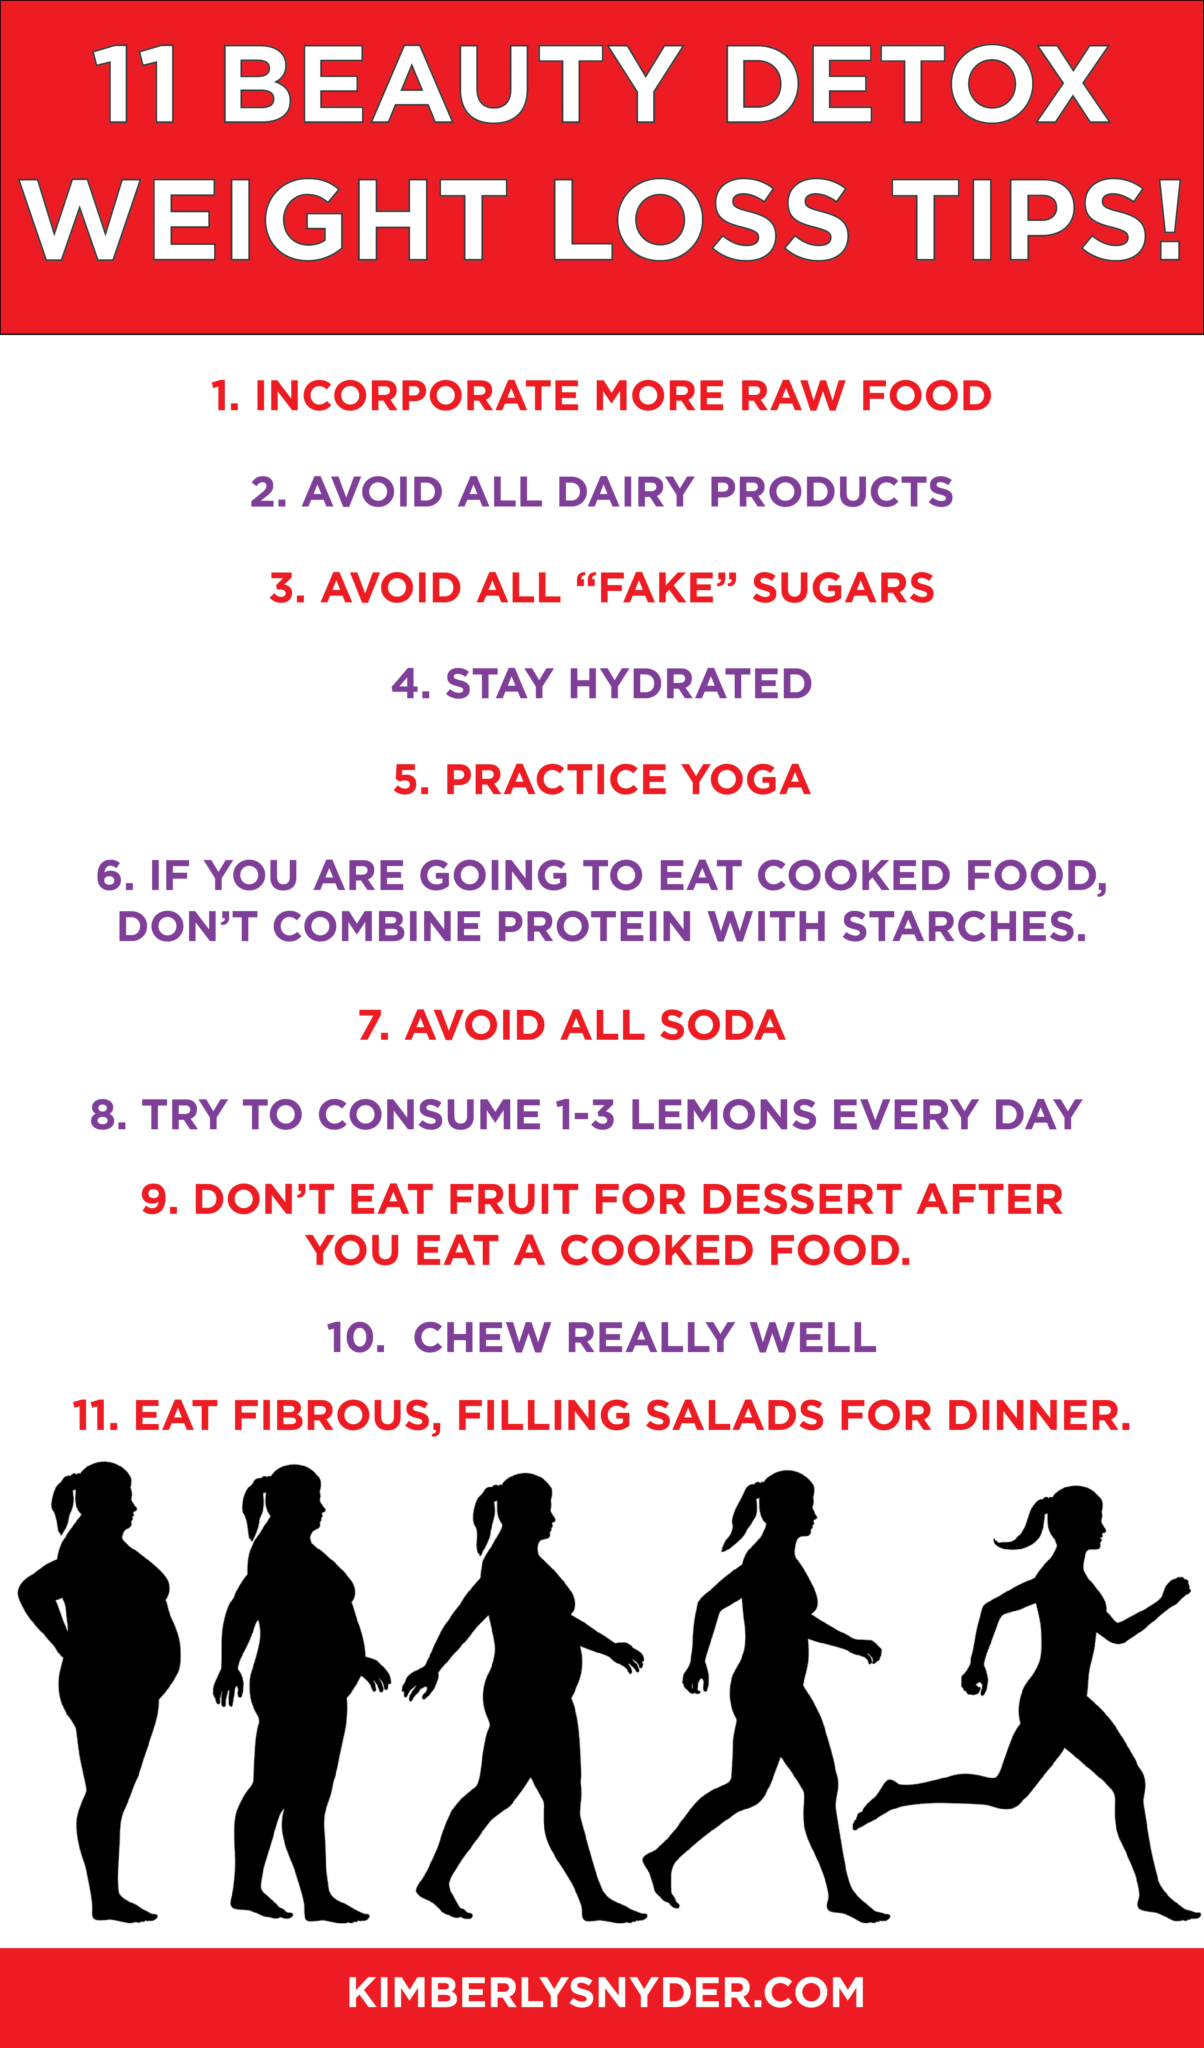 11 Beauty Detox Weight Loss Tips Kimberly Snyder